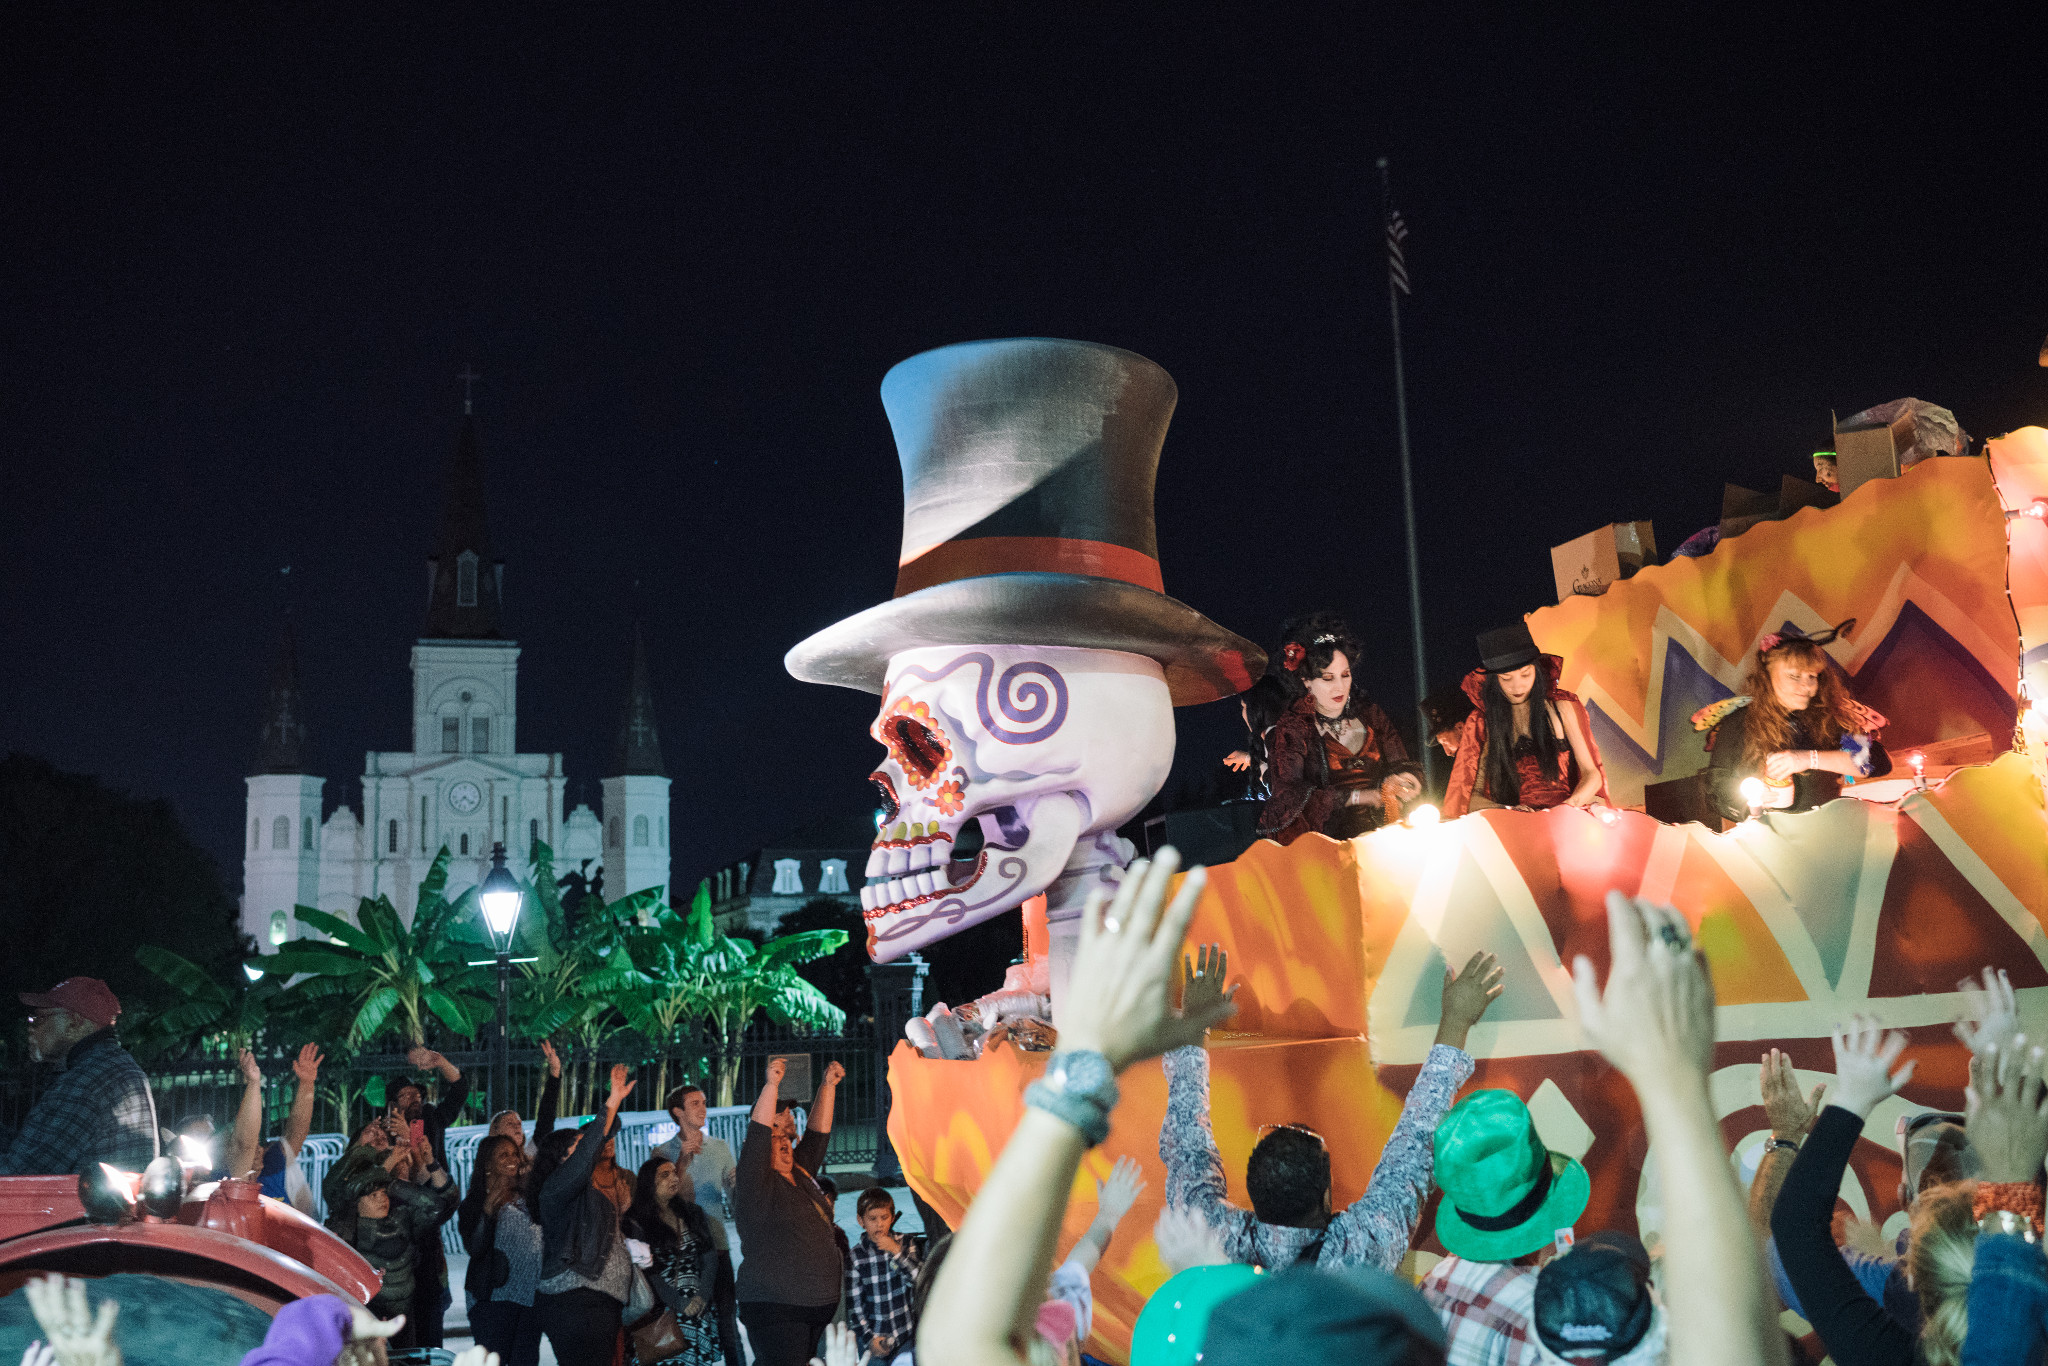 Krewe Of Boo Halloween Parade 2020 Krewe of Boo Parade in New Orleans | New Orleans Local's Guide